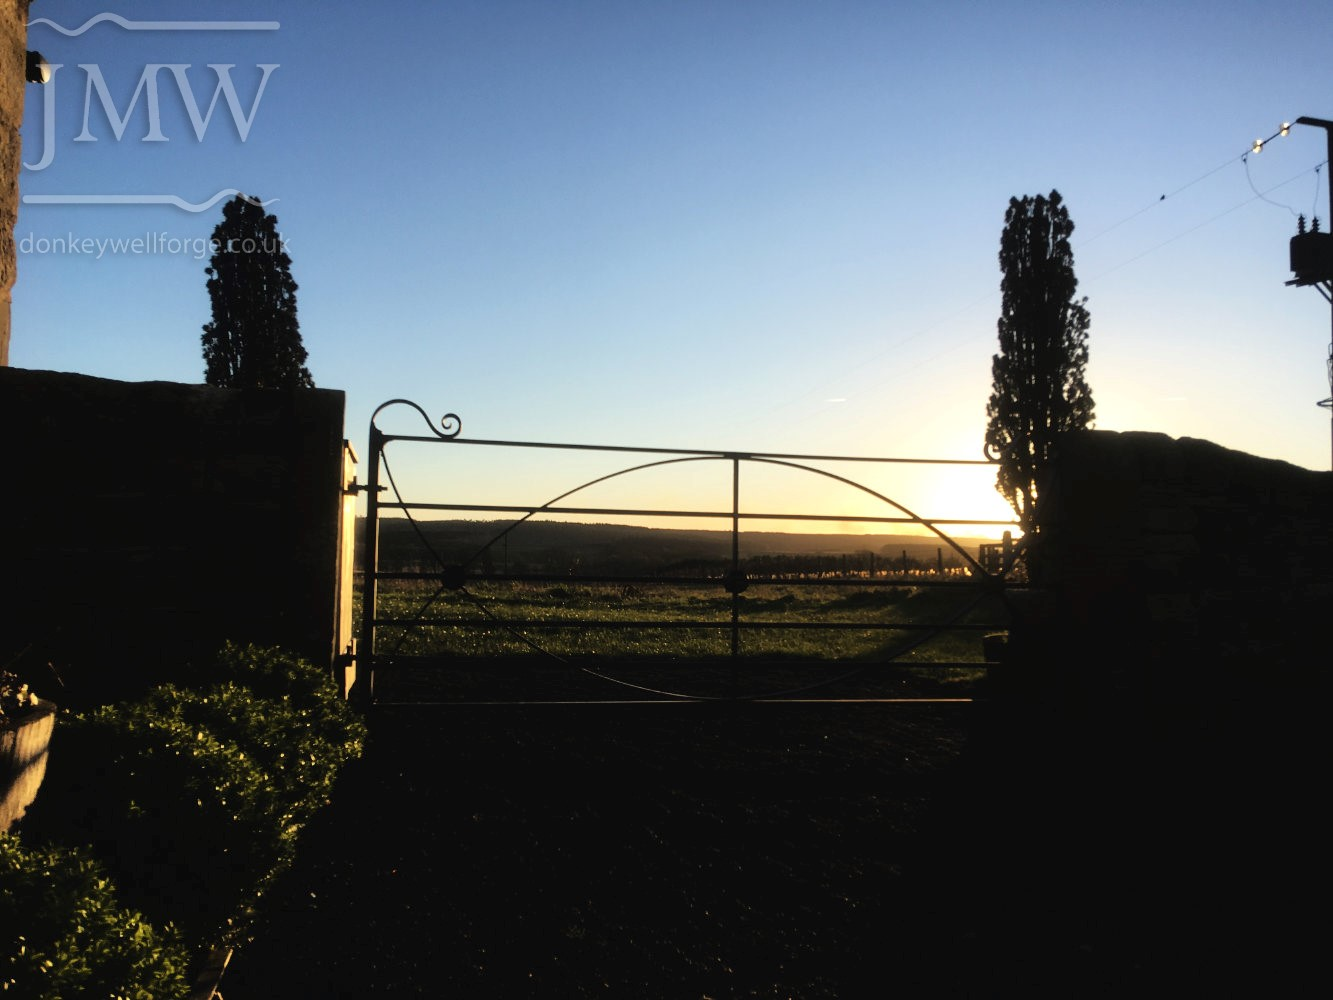 -healey-barn-wedding-venue-gate-ornate-donkeywell-forge